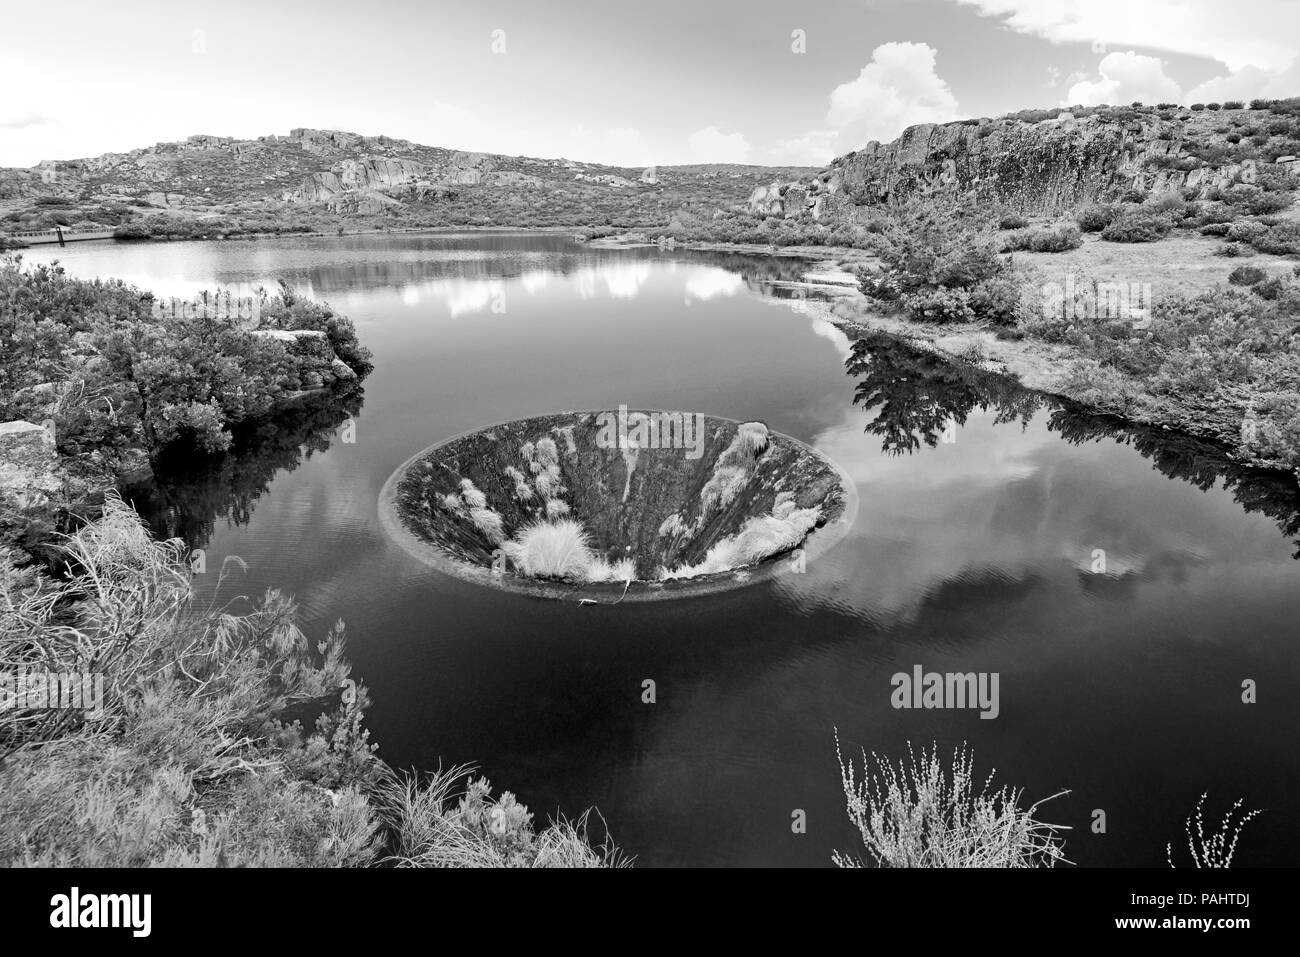 Man made funnel in the middle of a mountain lake in black and white - Stock Image